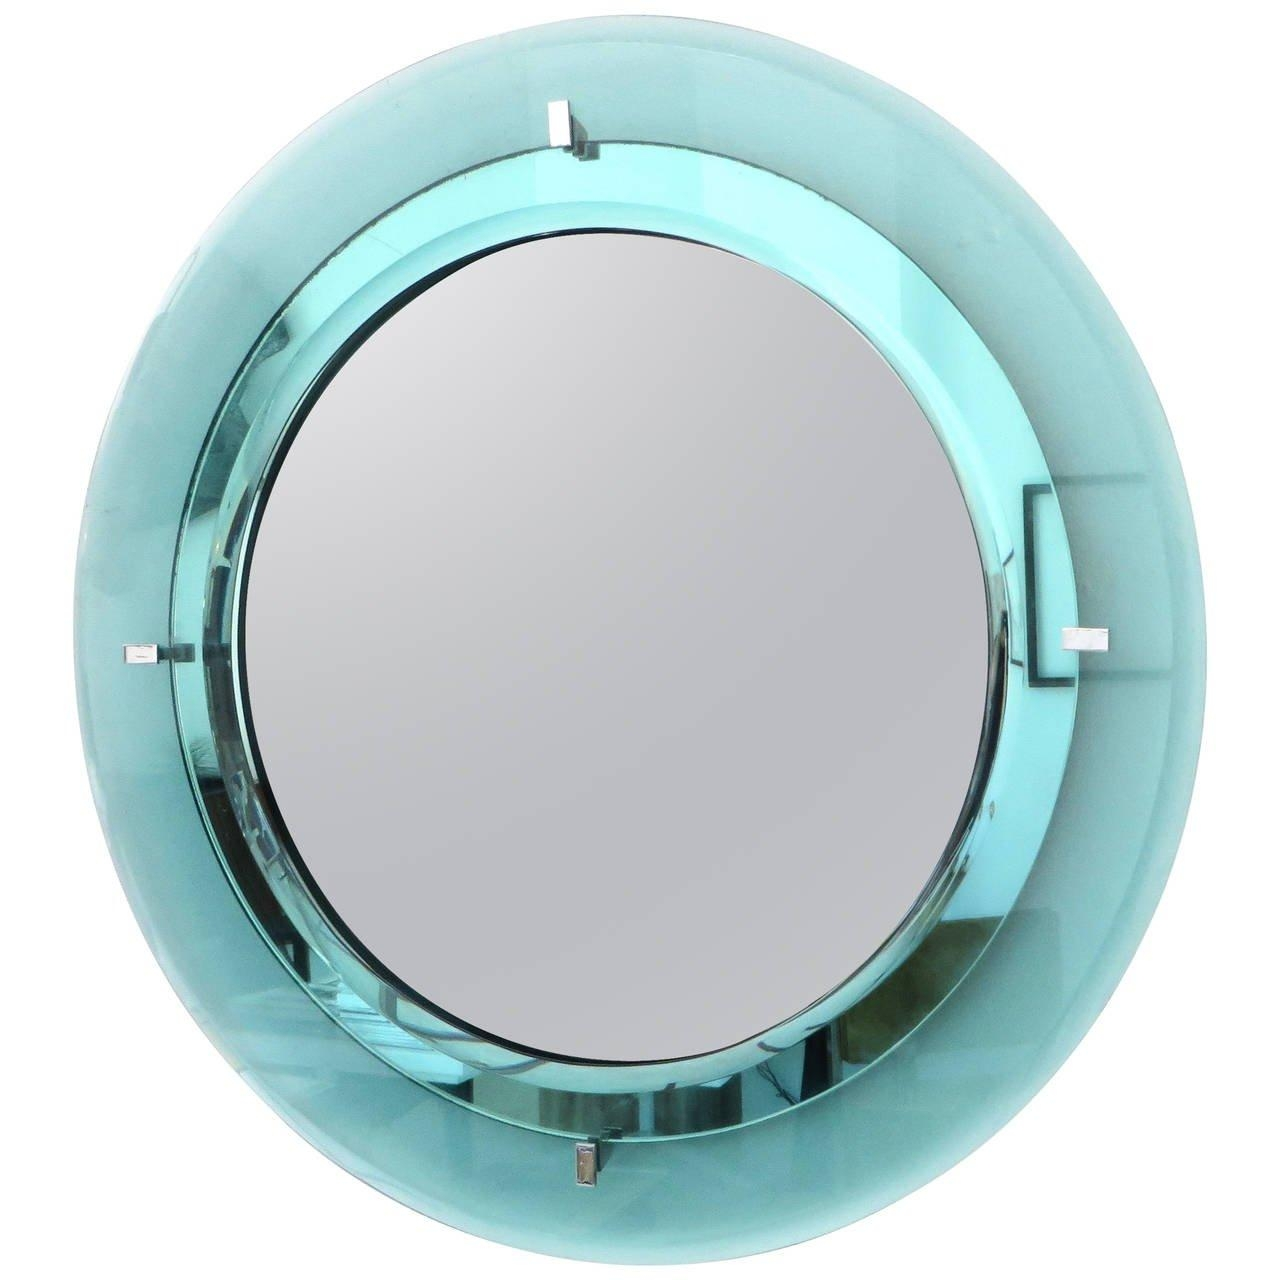 Pale Aqua Blue Italian Fontana Arte Round Beveled Mirror At 1Stdibs For Round Bevelled Mirror (View 10 of 20)